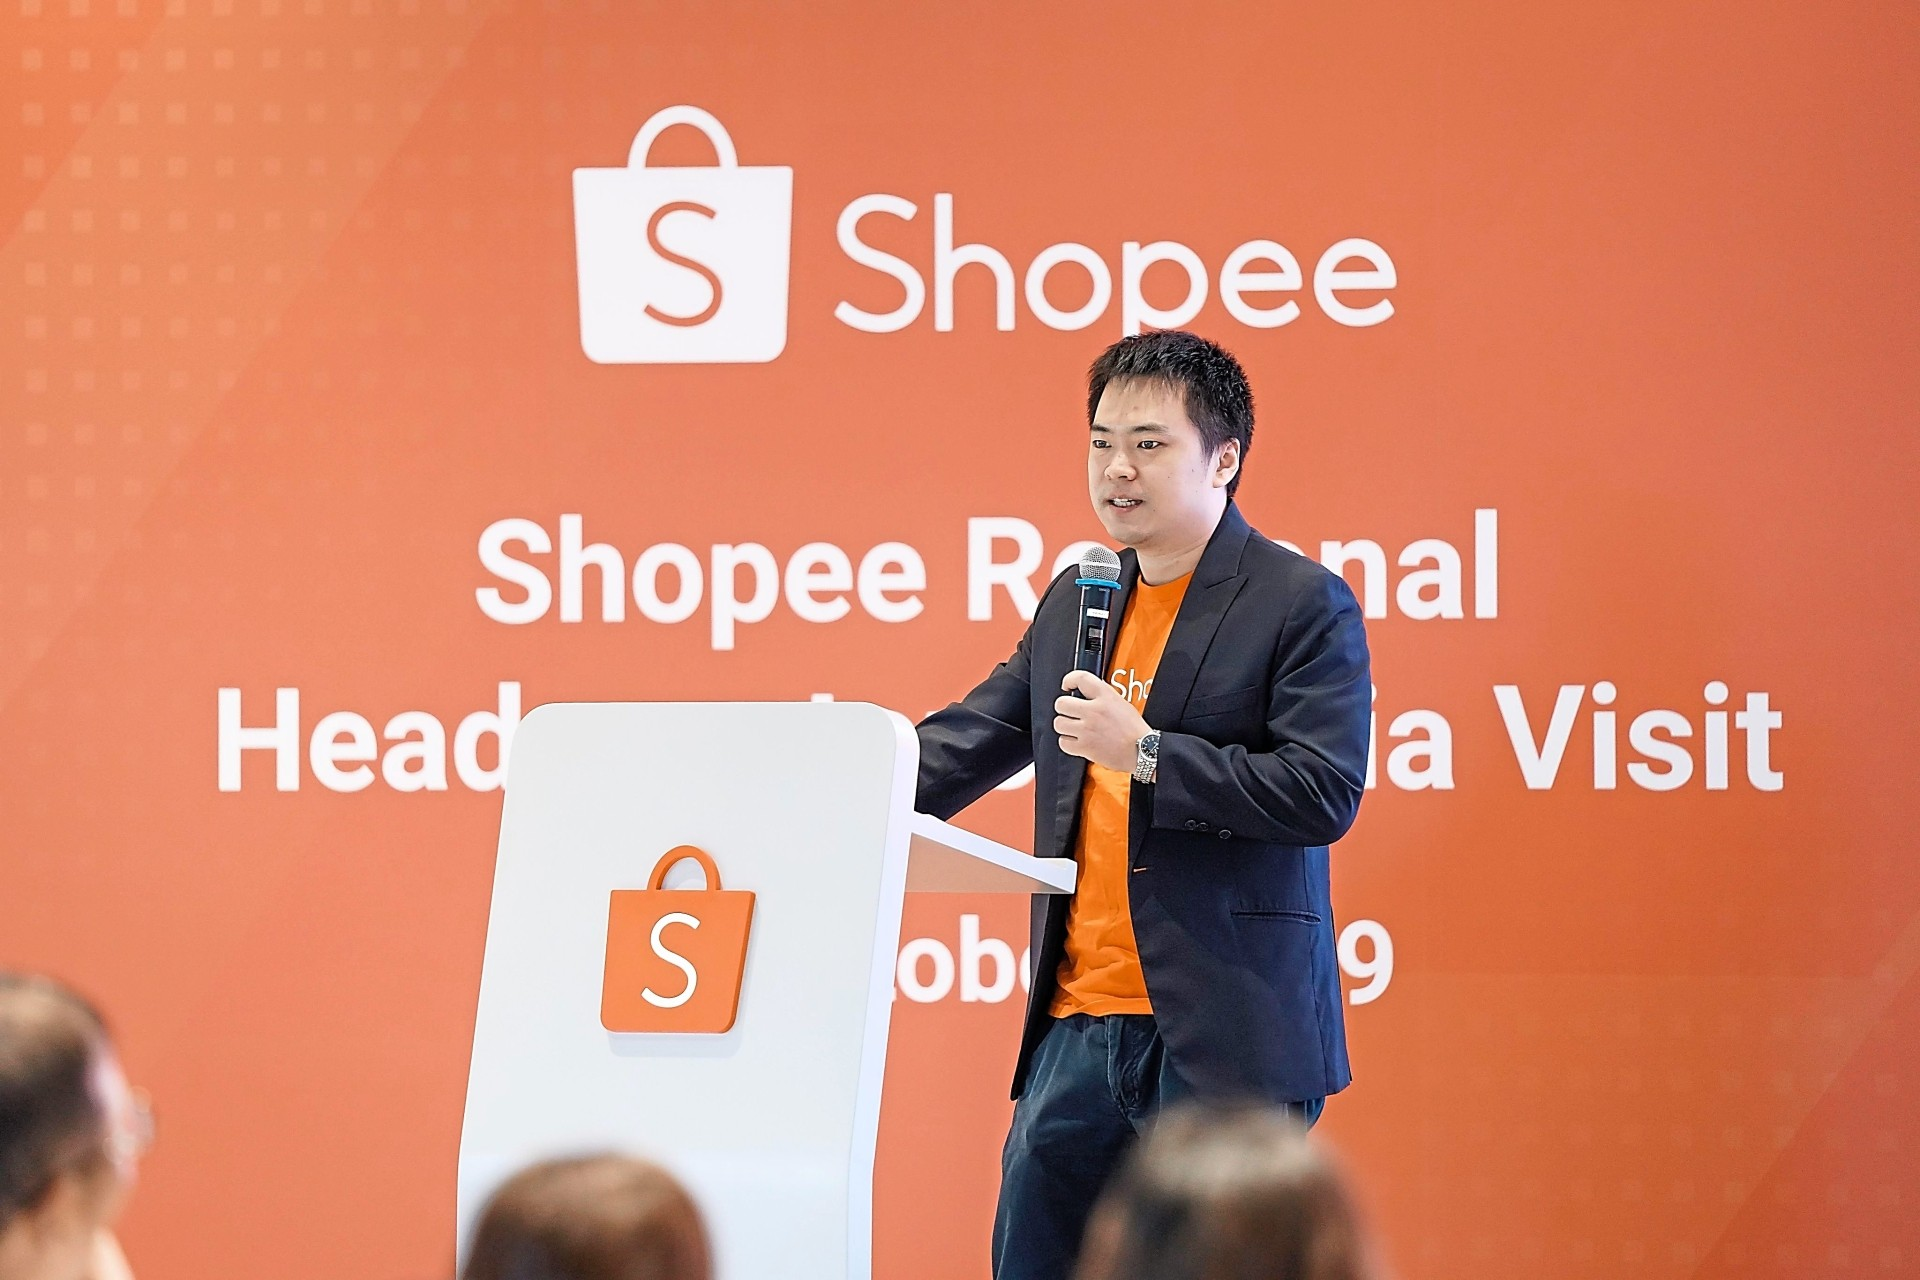 e commerce platform Shopee confident of sustaining strong growth ...